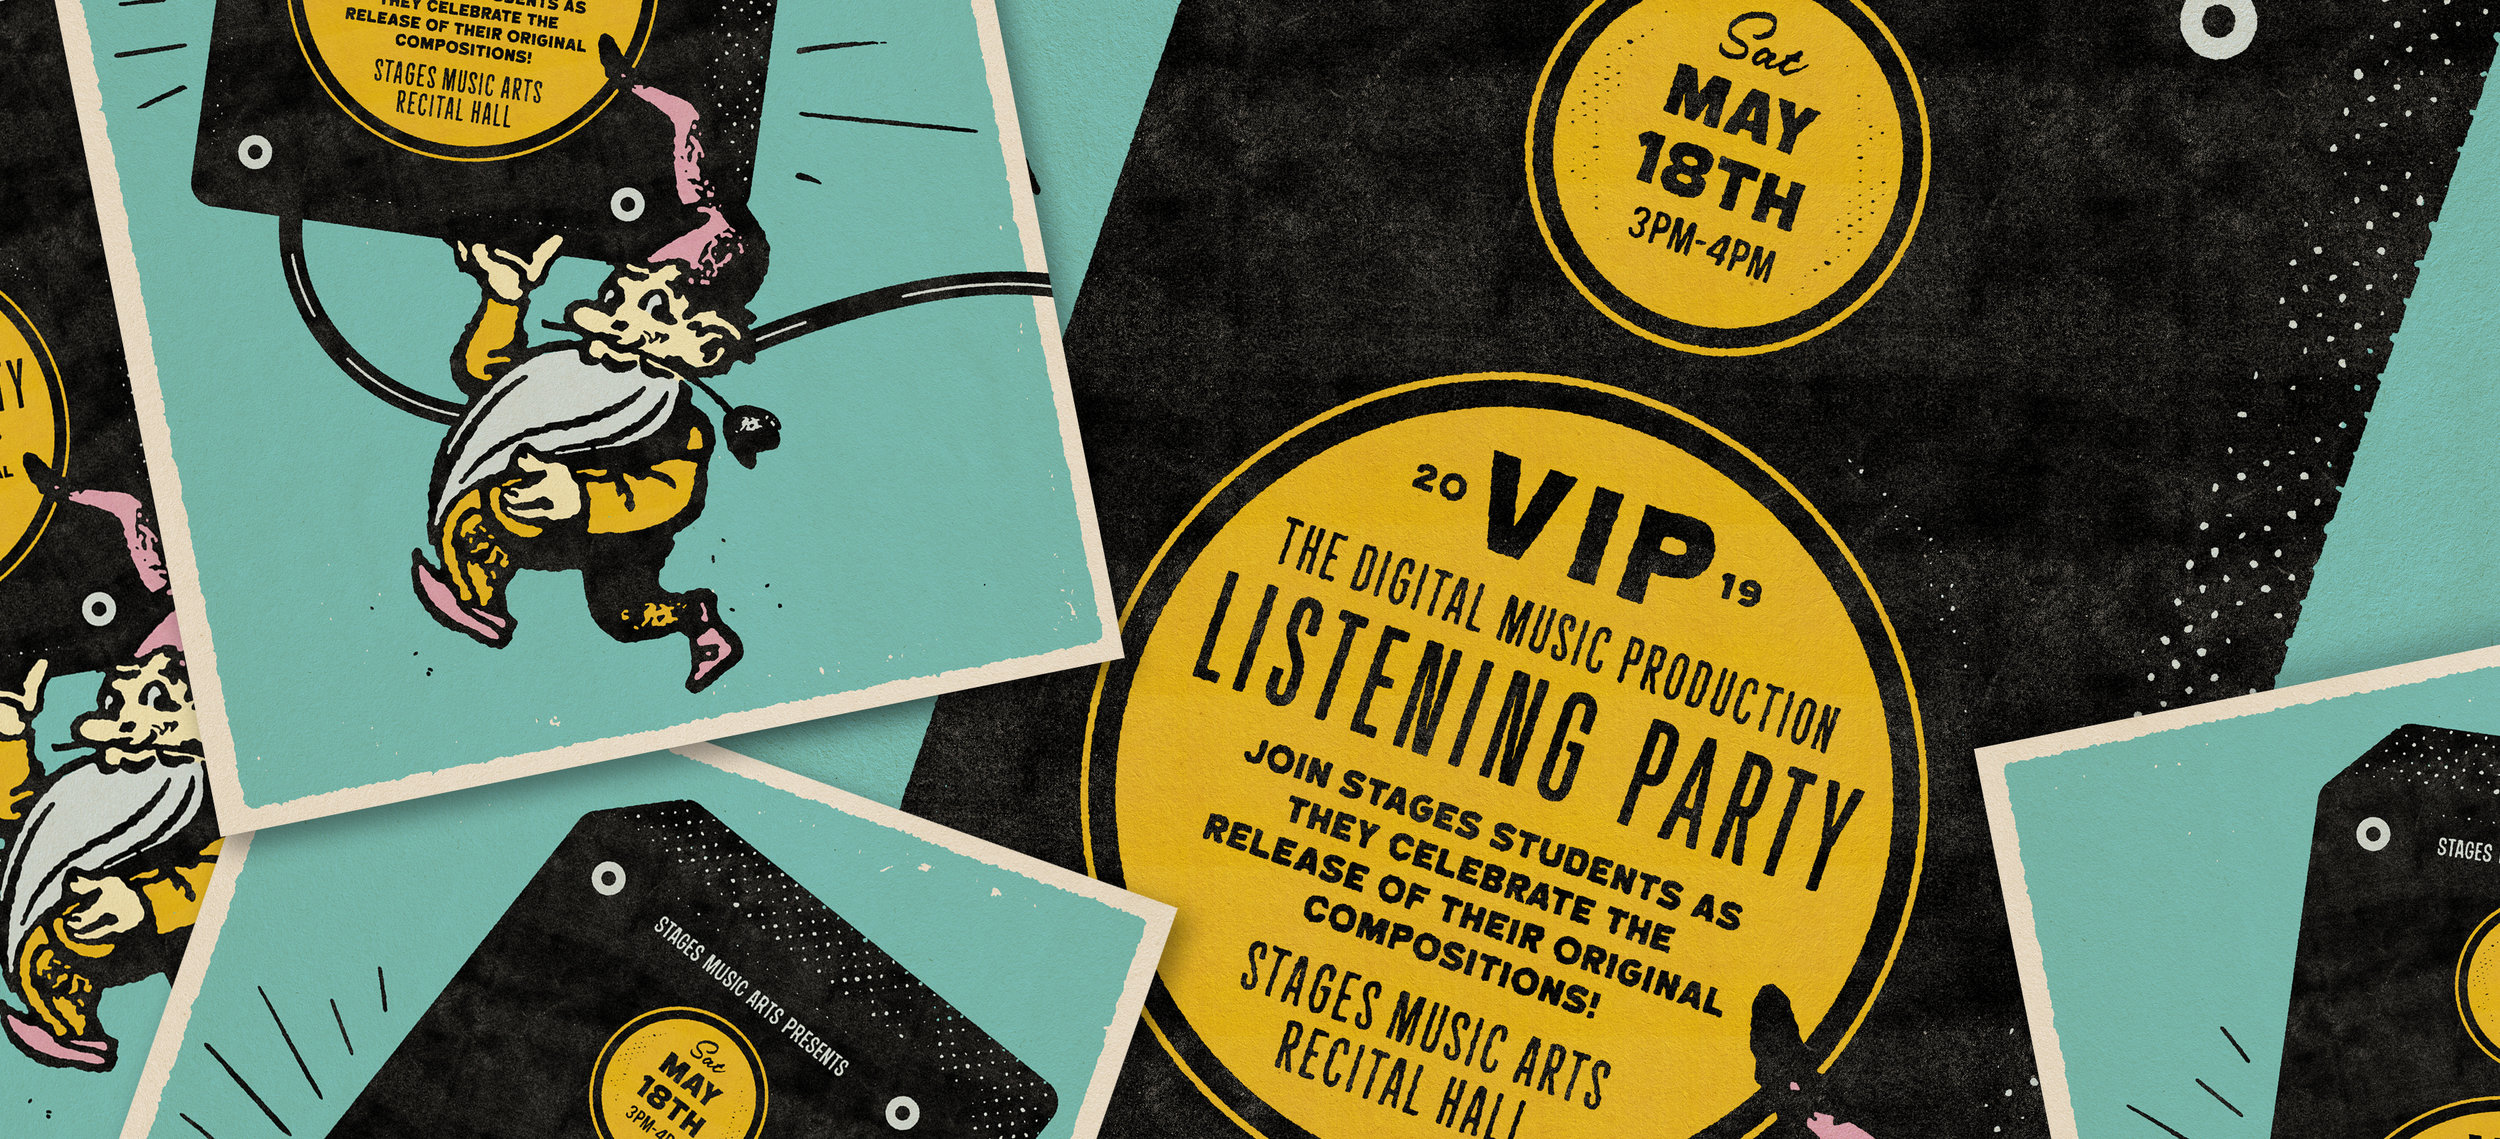 Digital Music Production Listening Party - Saturday, May 18th3:00PM–4:00PMStages Music Arts Recital Hall